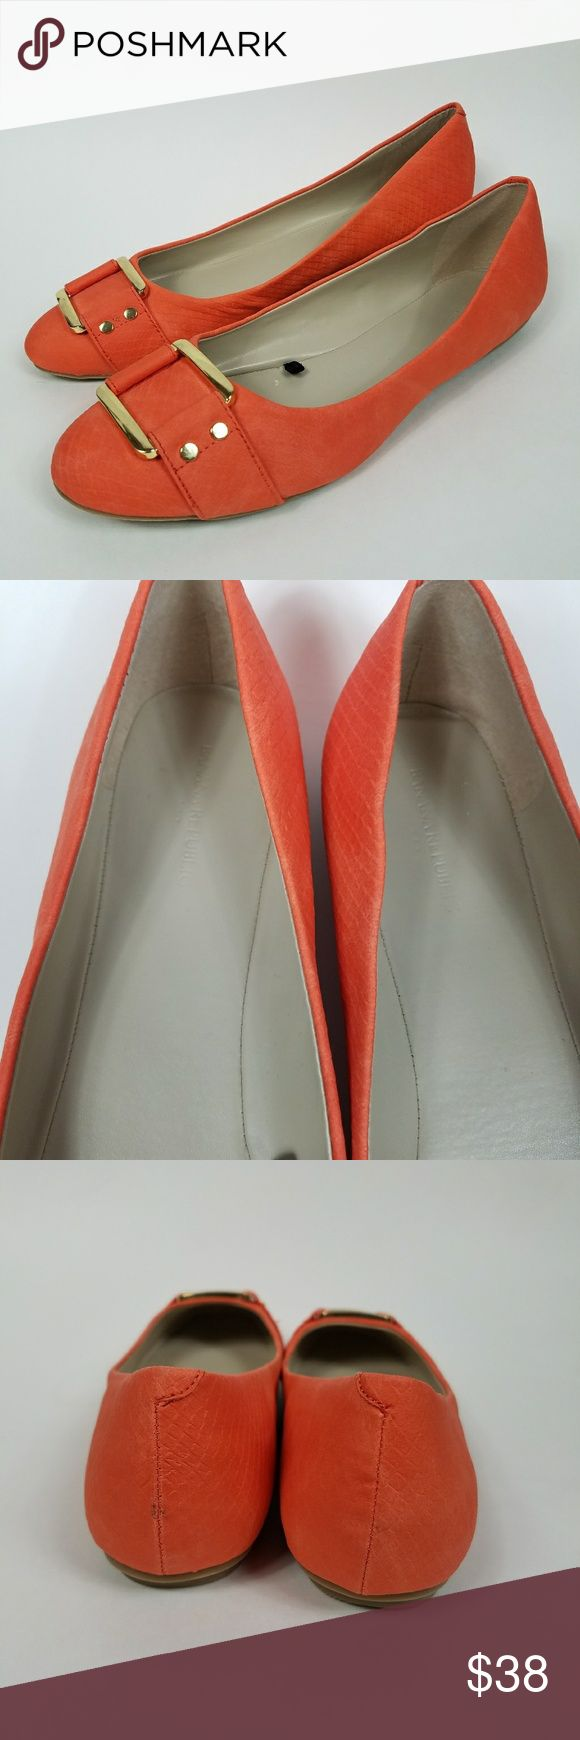 Banana republic orange ballet flat w/ gold buckle Orange Banana Republic leather flats with a snakeskin texture. Gold buckle detail. Excellent conditiin. New without tags/box. Women's size 10. Banana Republic Shoes Flats & Loafers